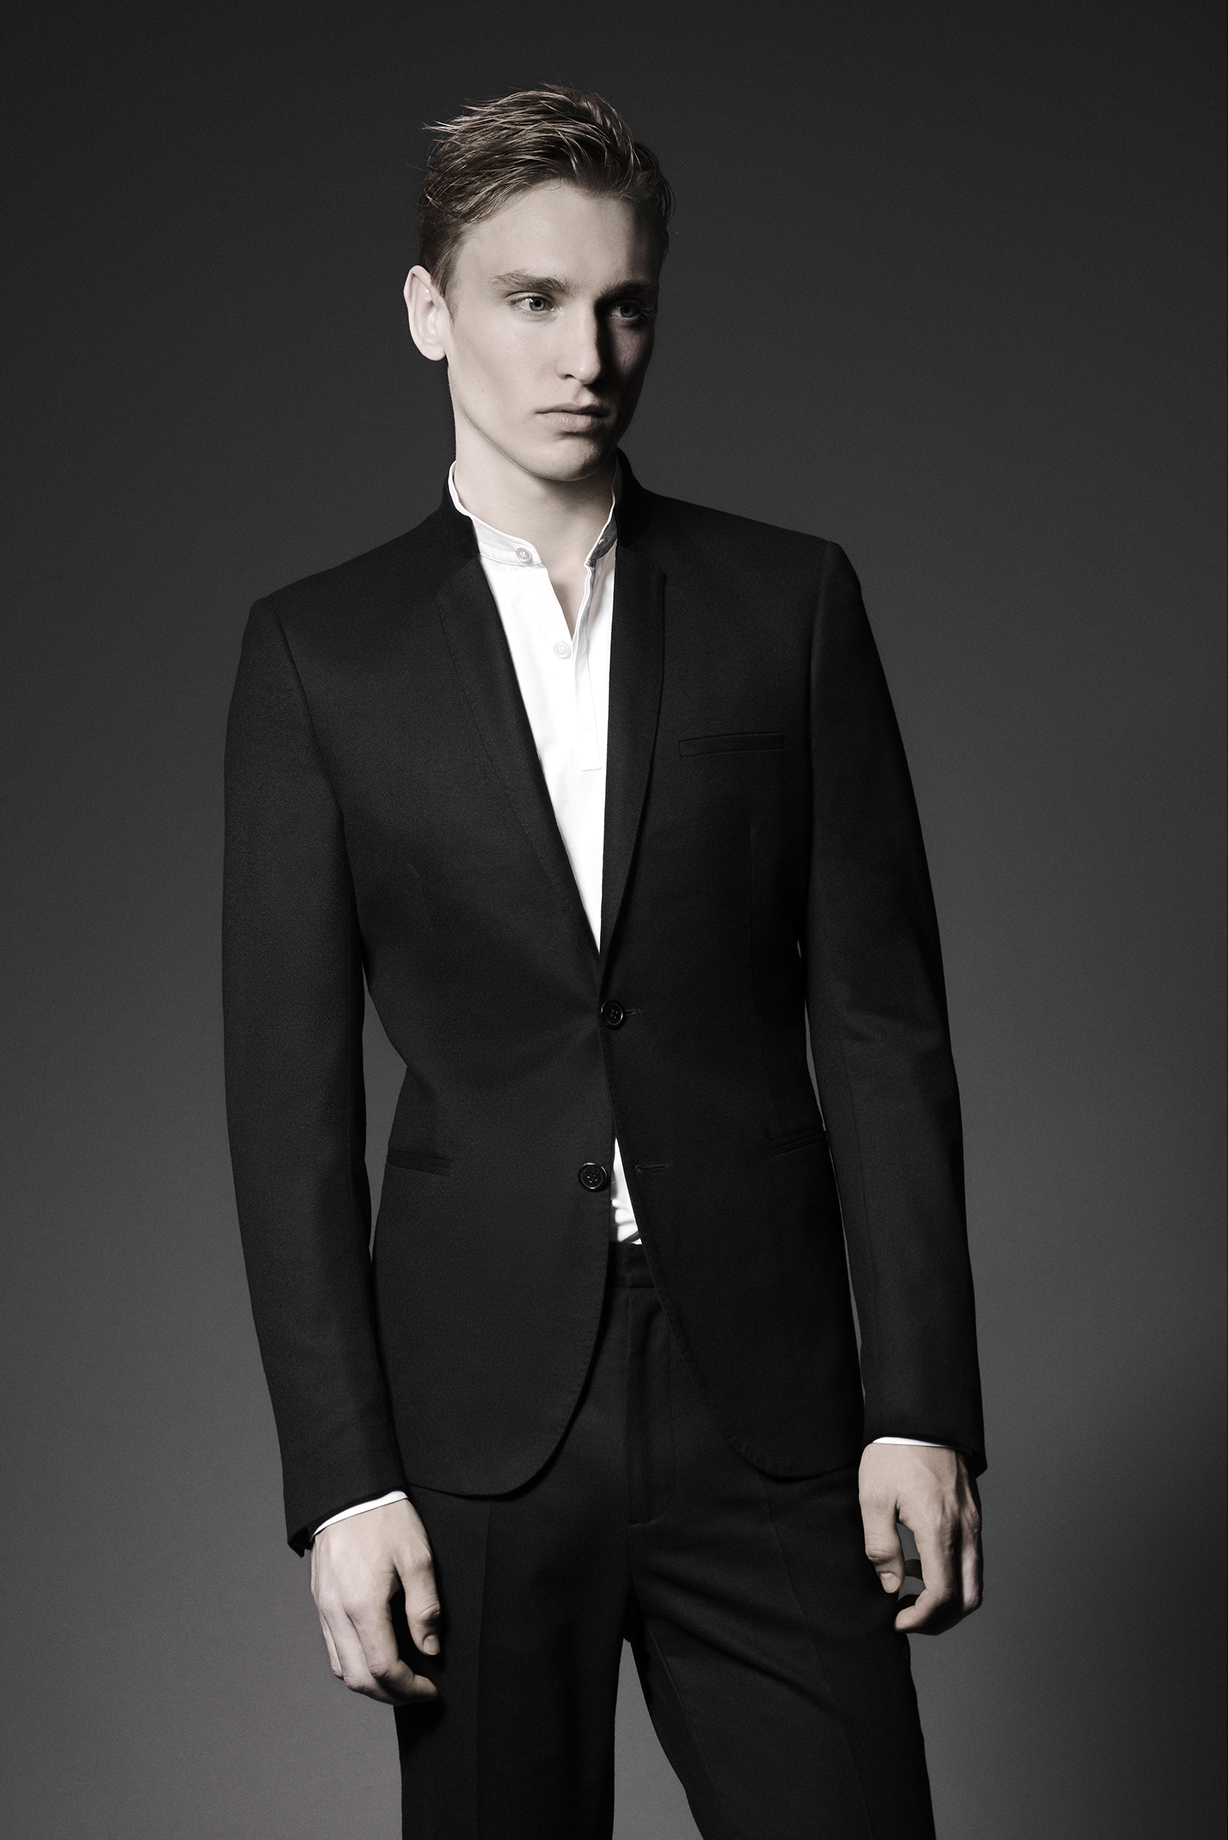 CONTEMPORARY JACKET Colours: Black 100% Wool Made In Italy  CONTEMPORARY SHIRT Colours: White 100% Cotton Made In Italy